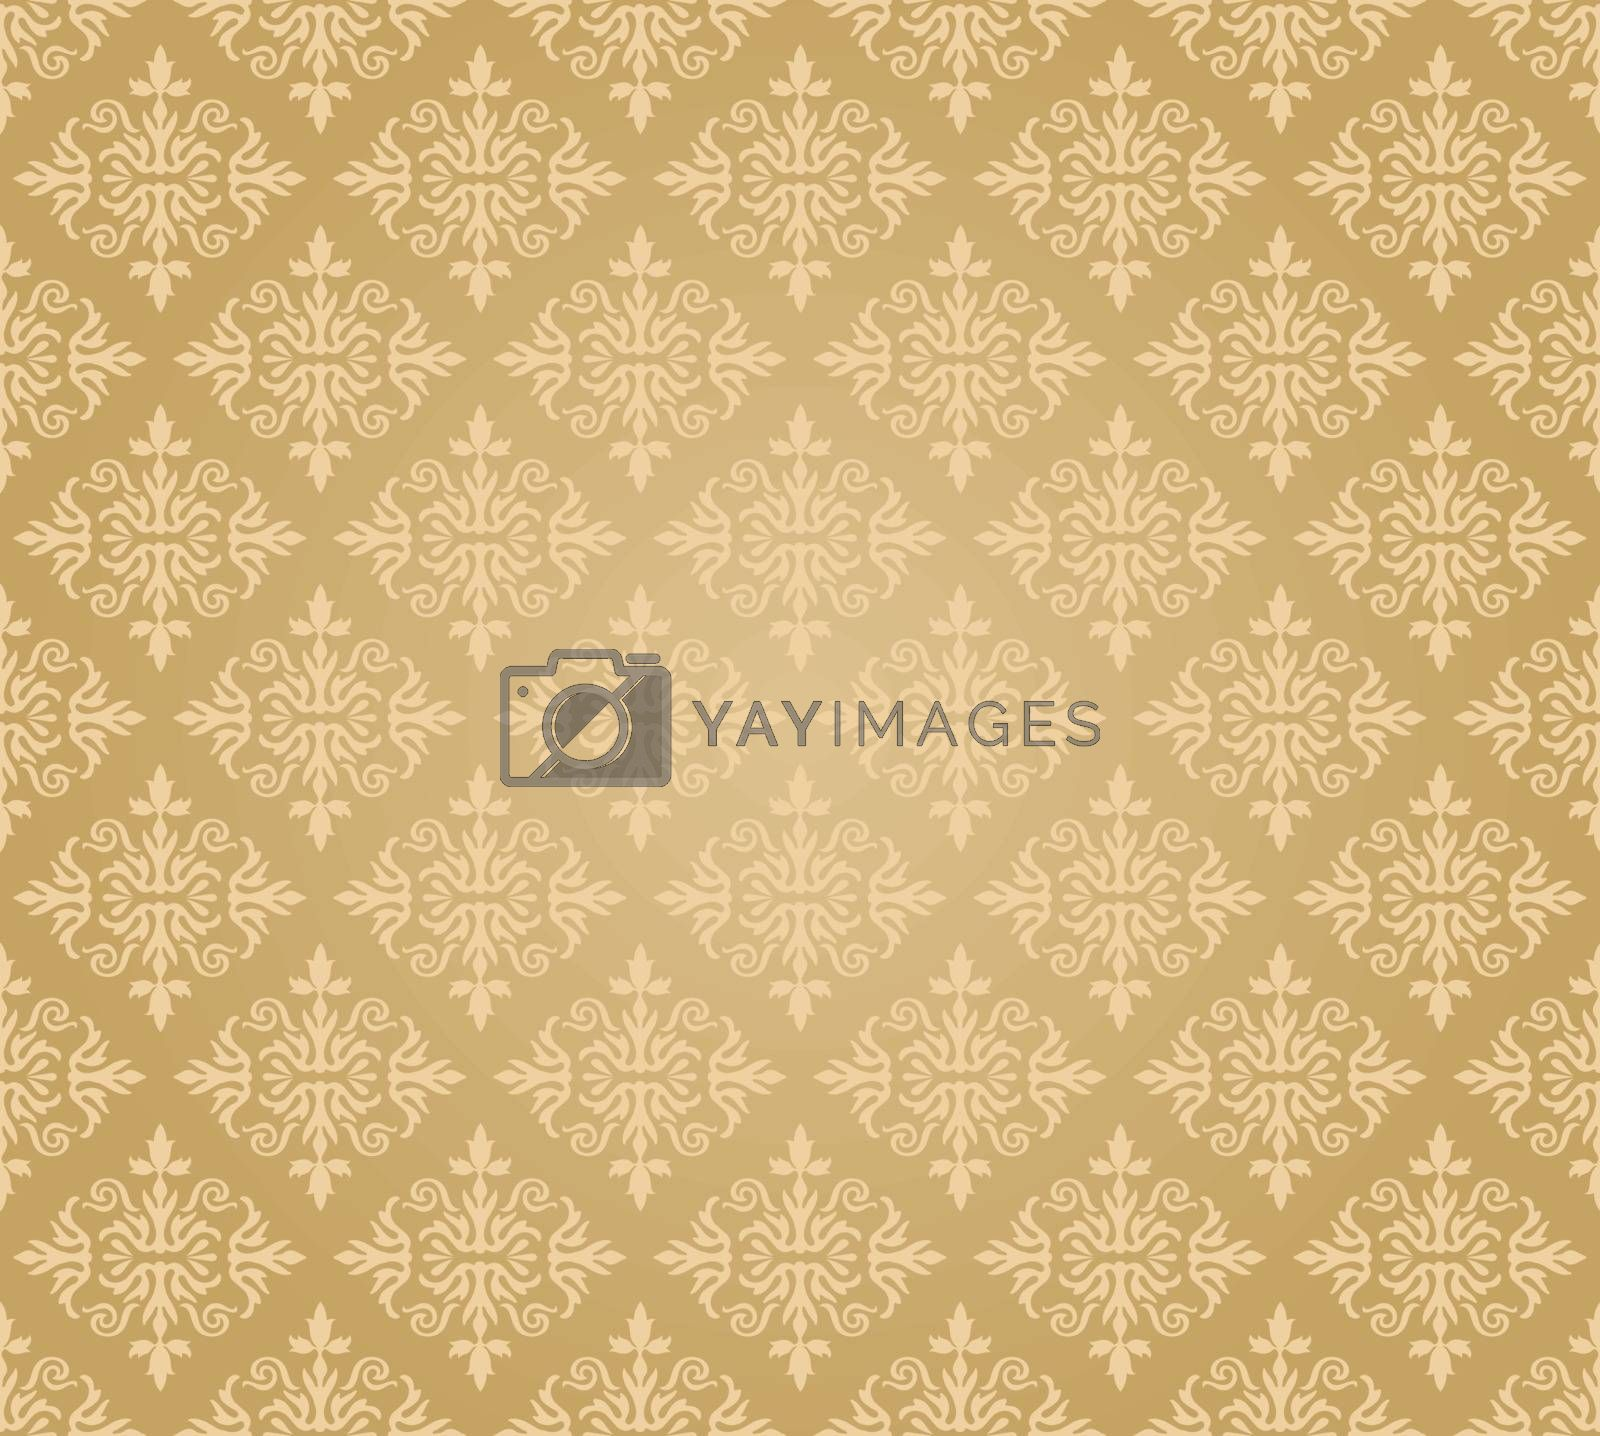 Seamless golden floral wallpaper diamond pattern. This image is a vector illustration.